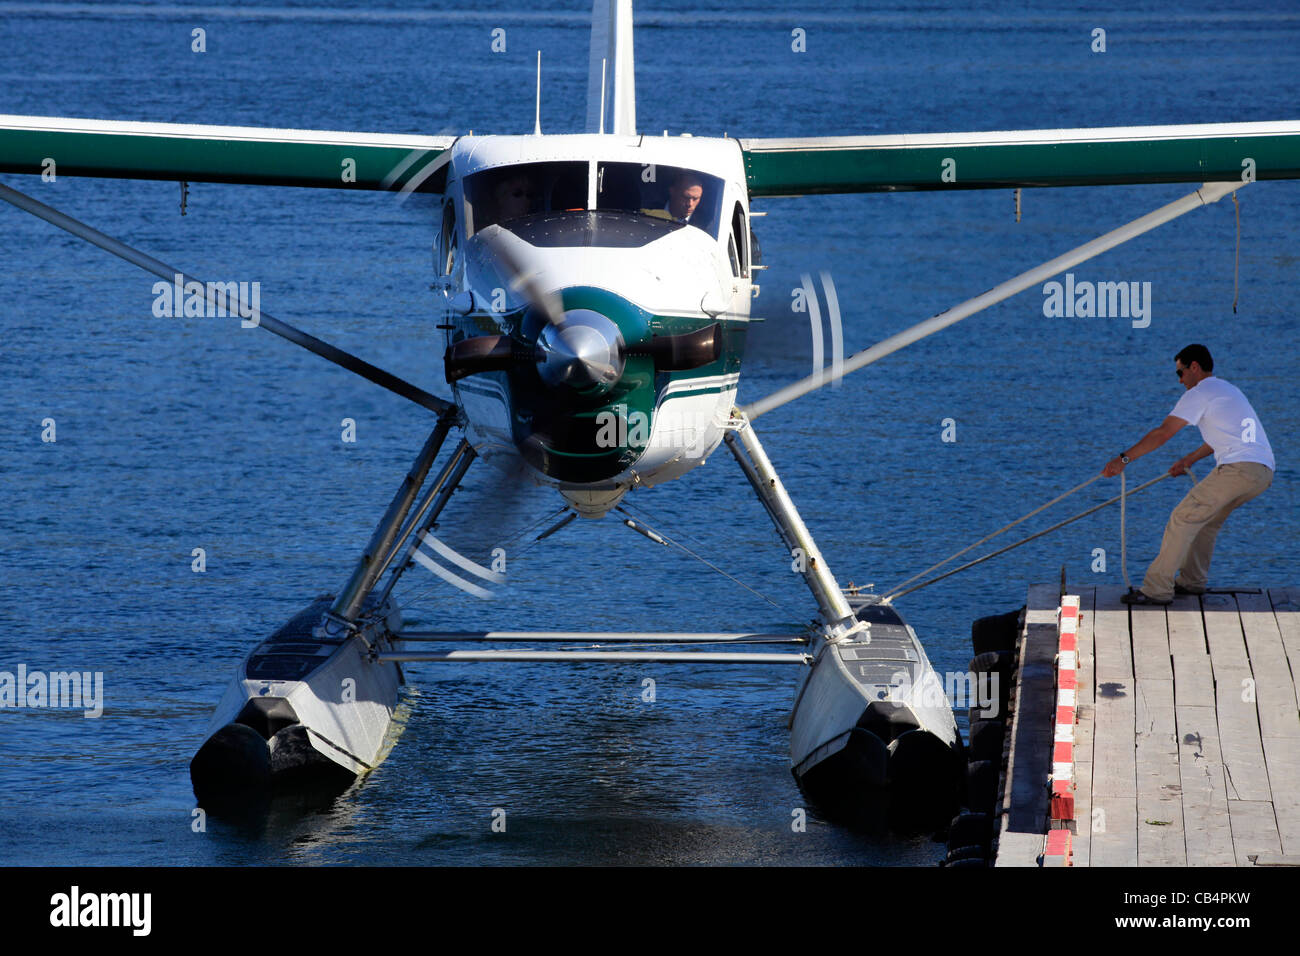 C-FITS (cn 90) Tofino Air about to departure to Vancouver - International Seaplane (CAM9) - Stock Image